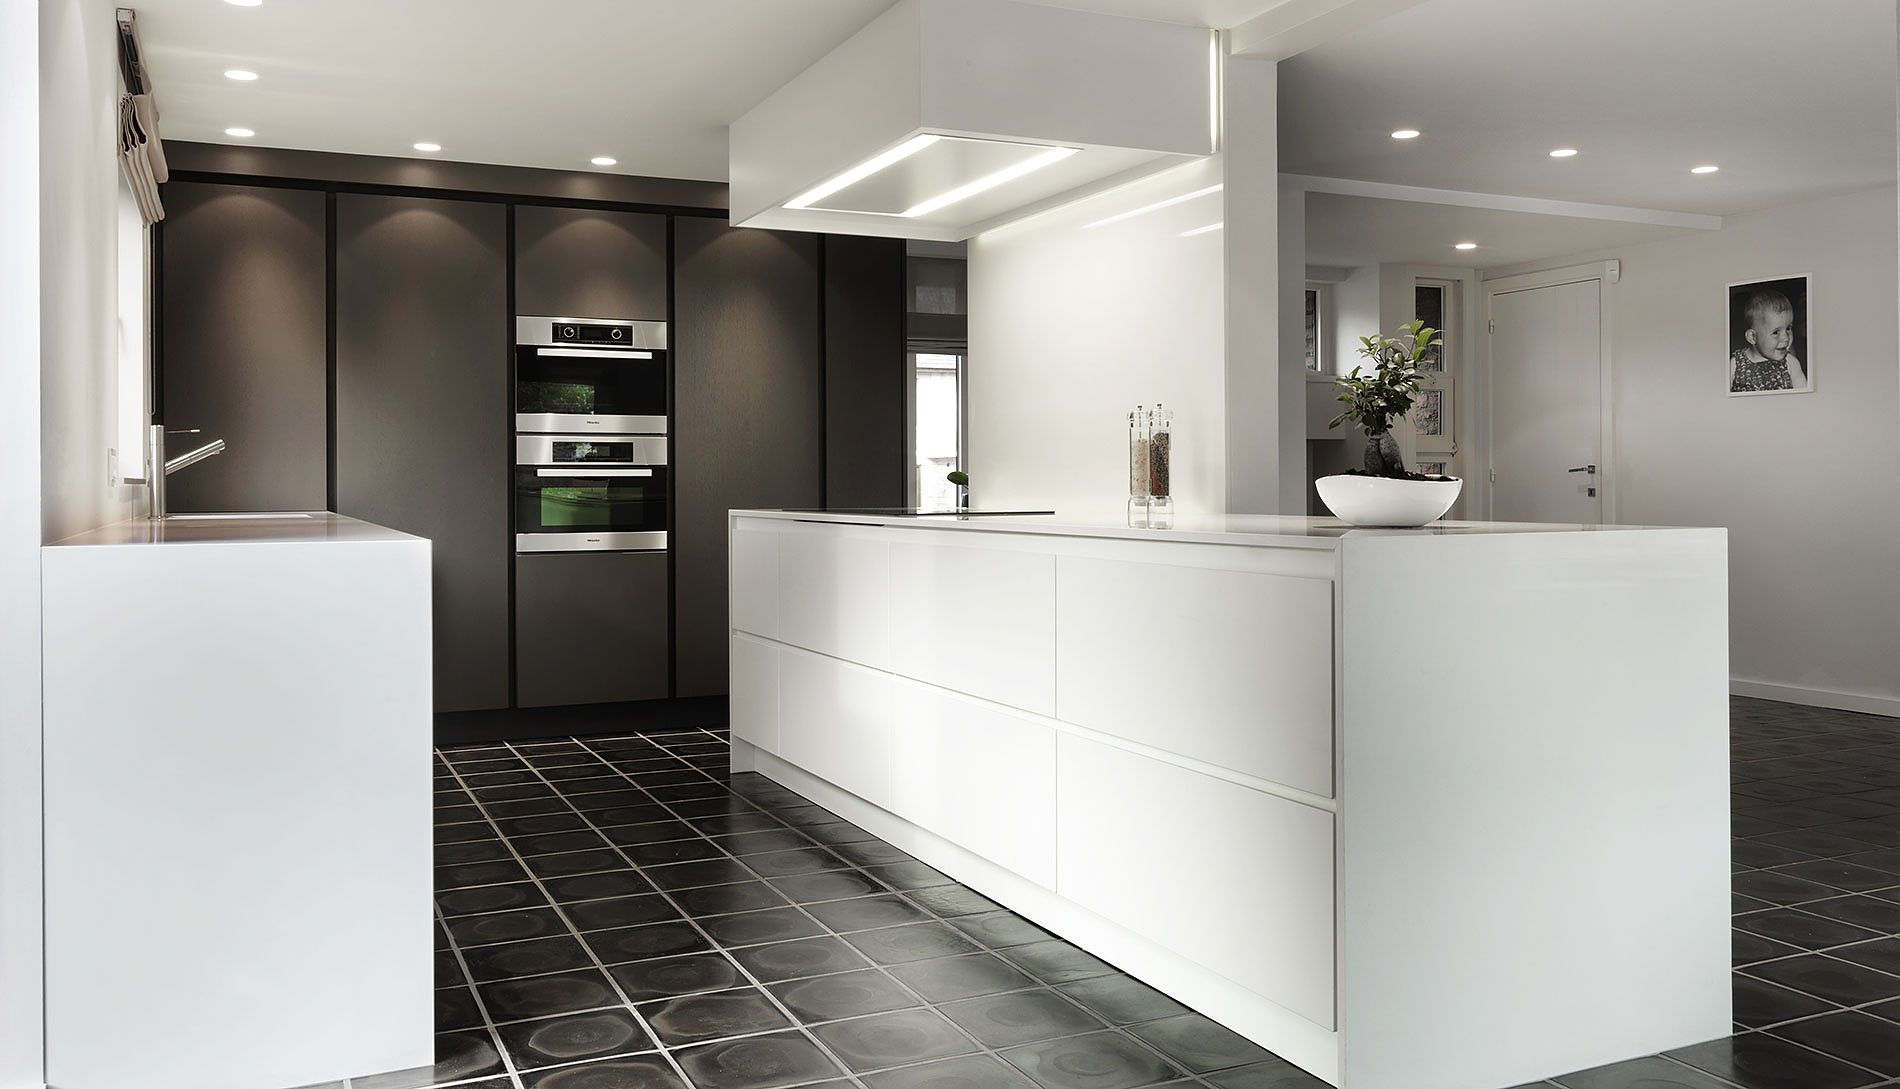 Diapal keukens en interieur kitchen pinterest for Interieur keukens